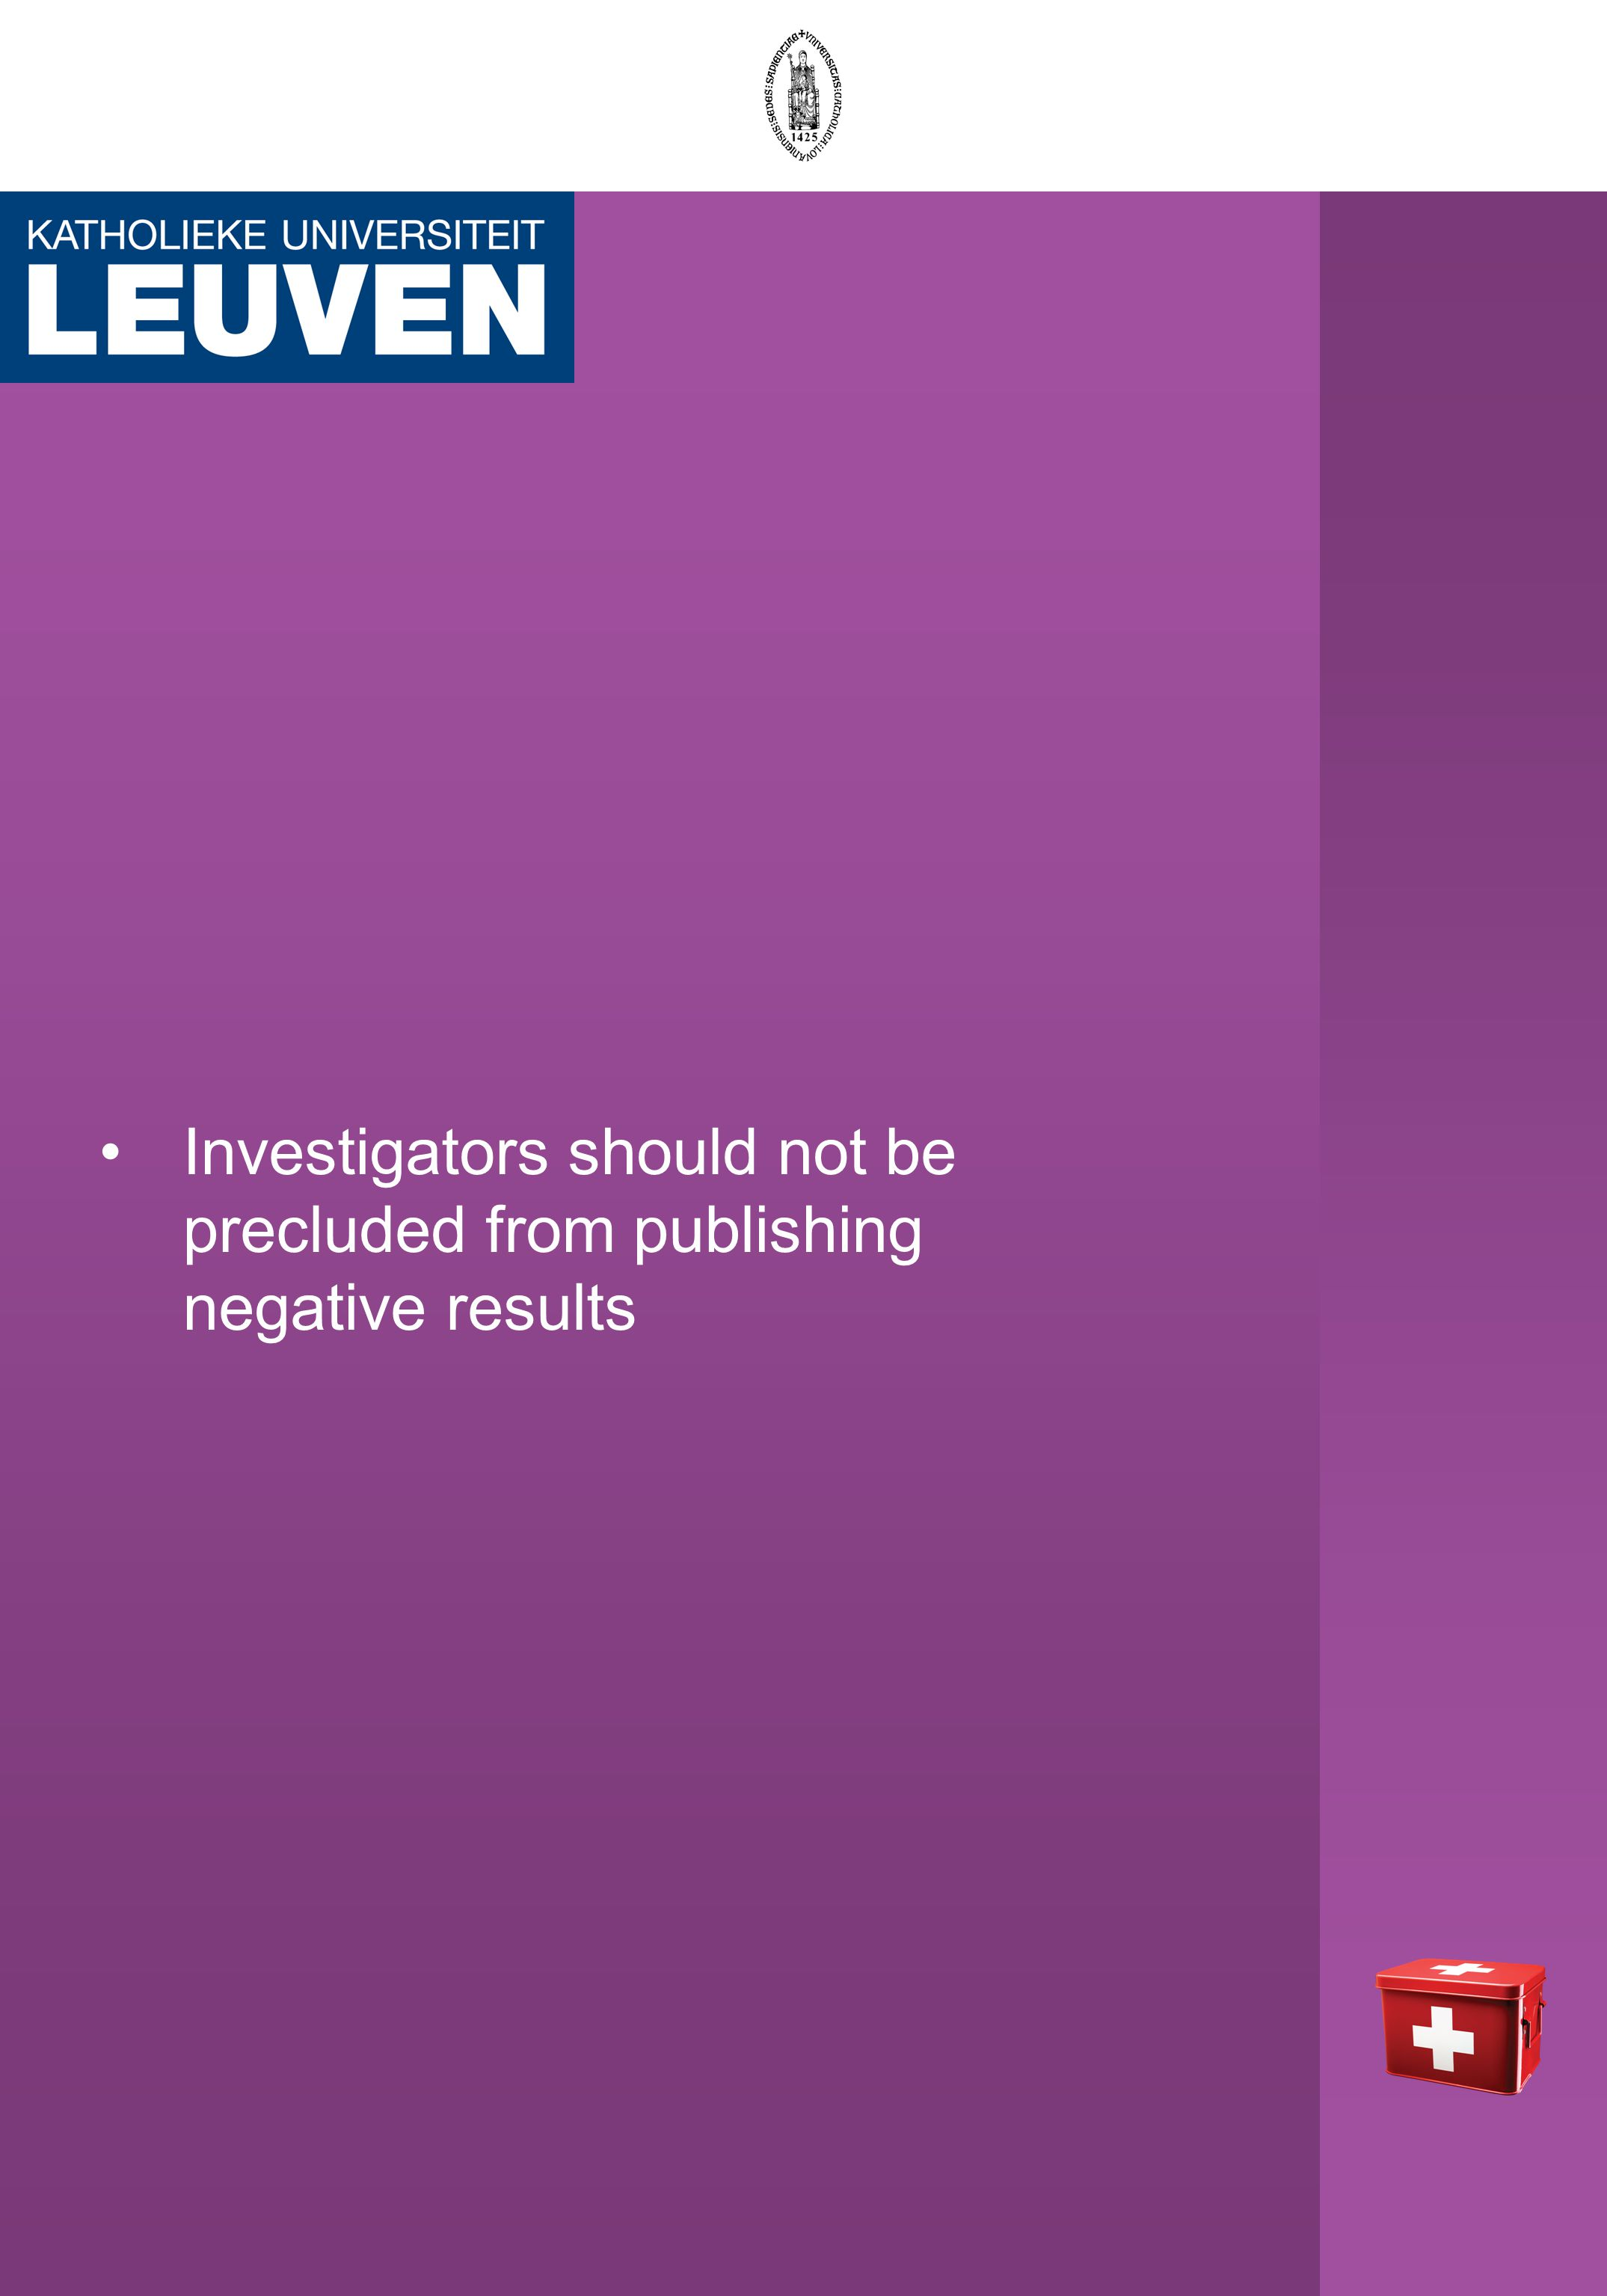 Investigators should not be precluded from publishing negative results